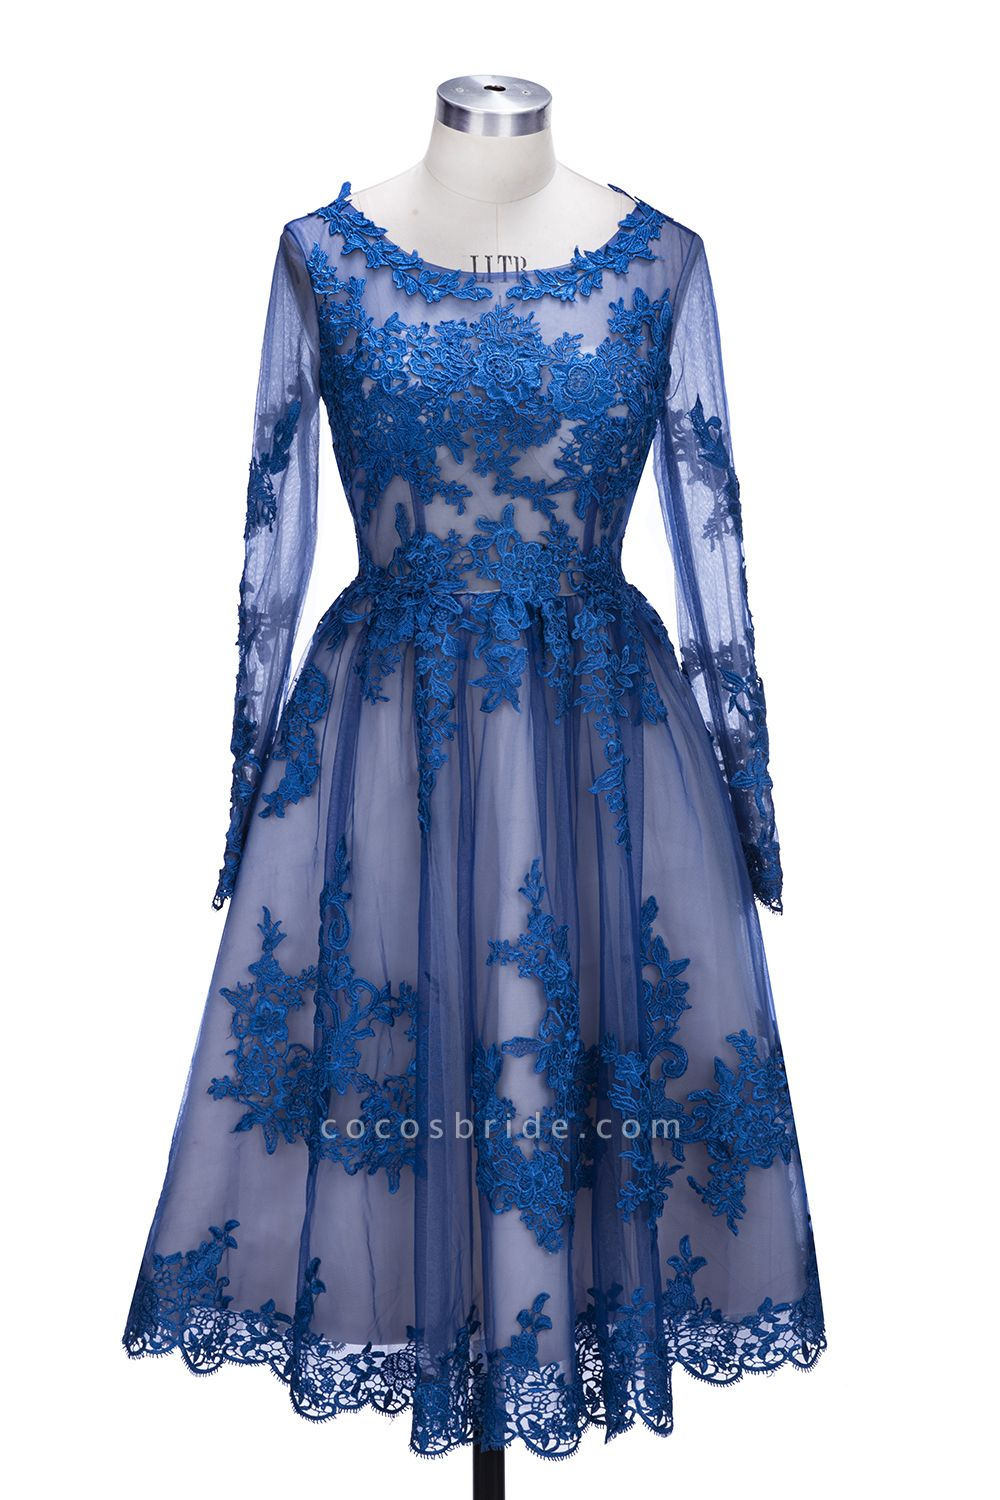 SELINA | A-line Short Scoop Long Sleeves Appliued Tulle Prom Dresses